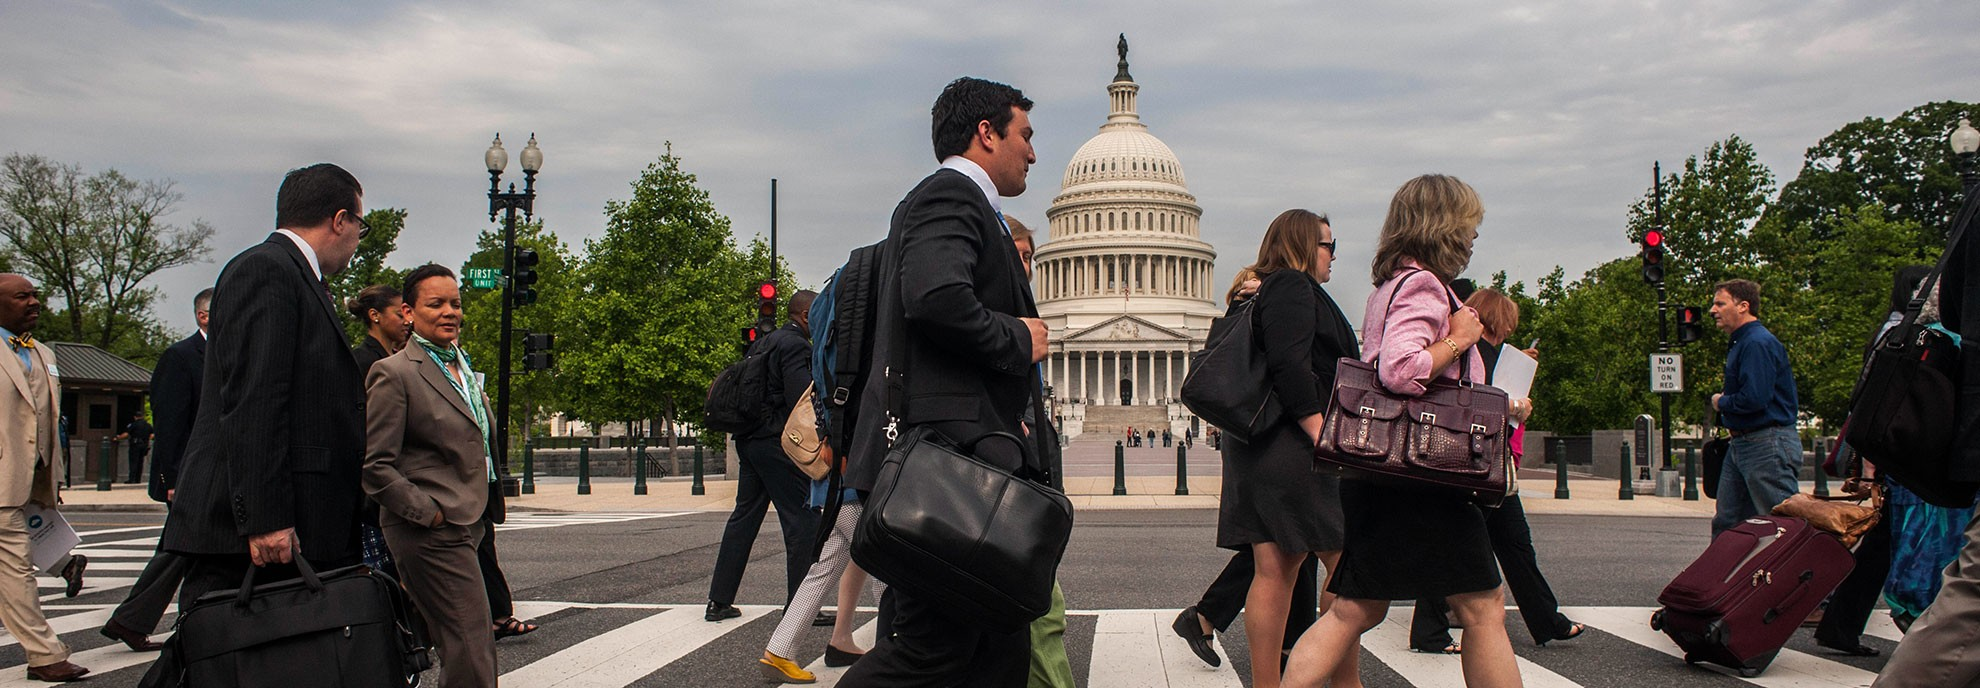 Clean Air Ambassadors walk past the Capitol in Washington, D.C., on their way to meet with their elected officials.